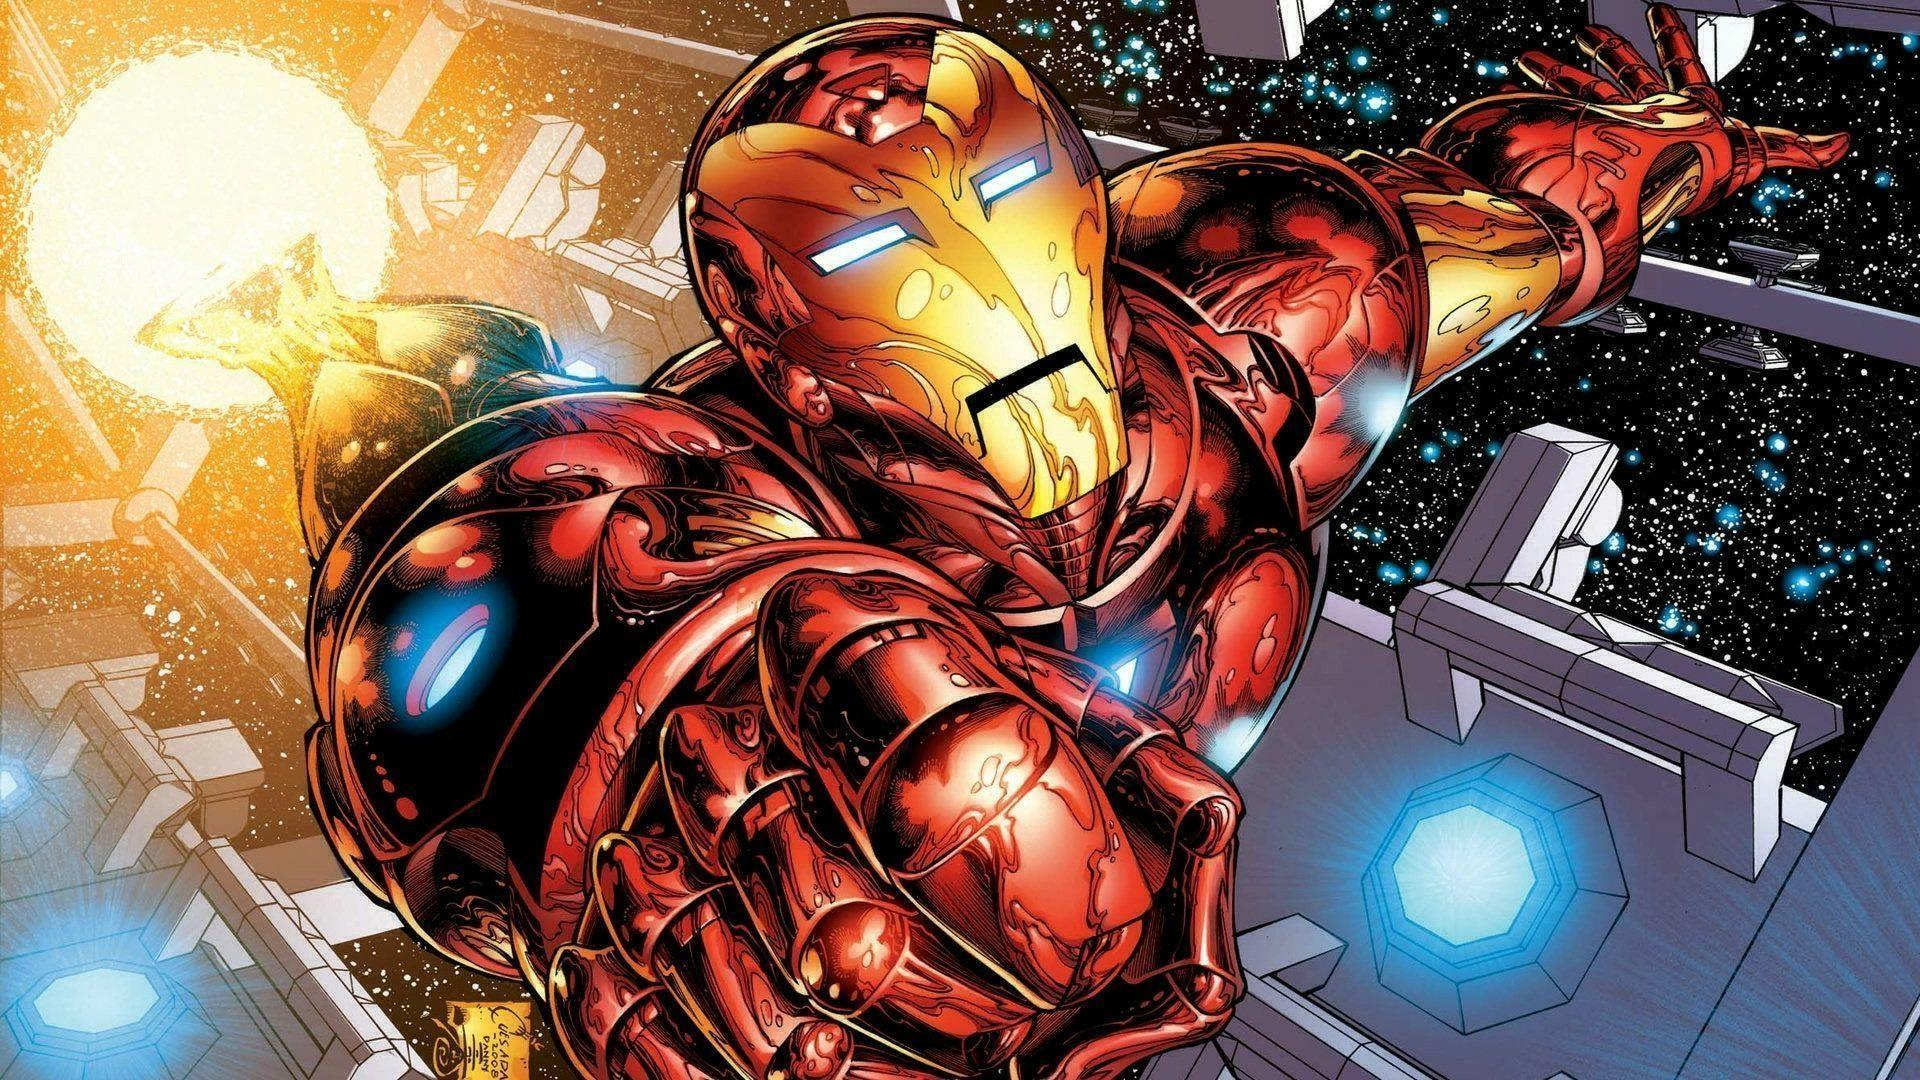 Iron man cartoon wallpapers wallpaper cave - Iron man wallpaper anime ...